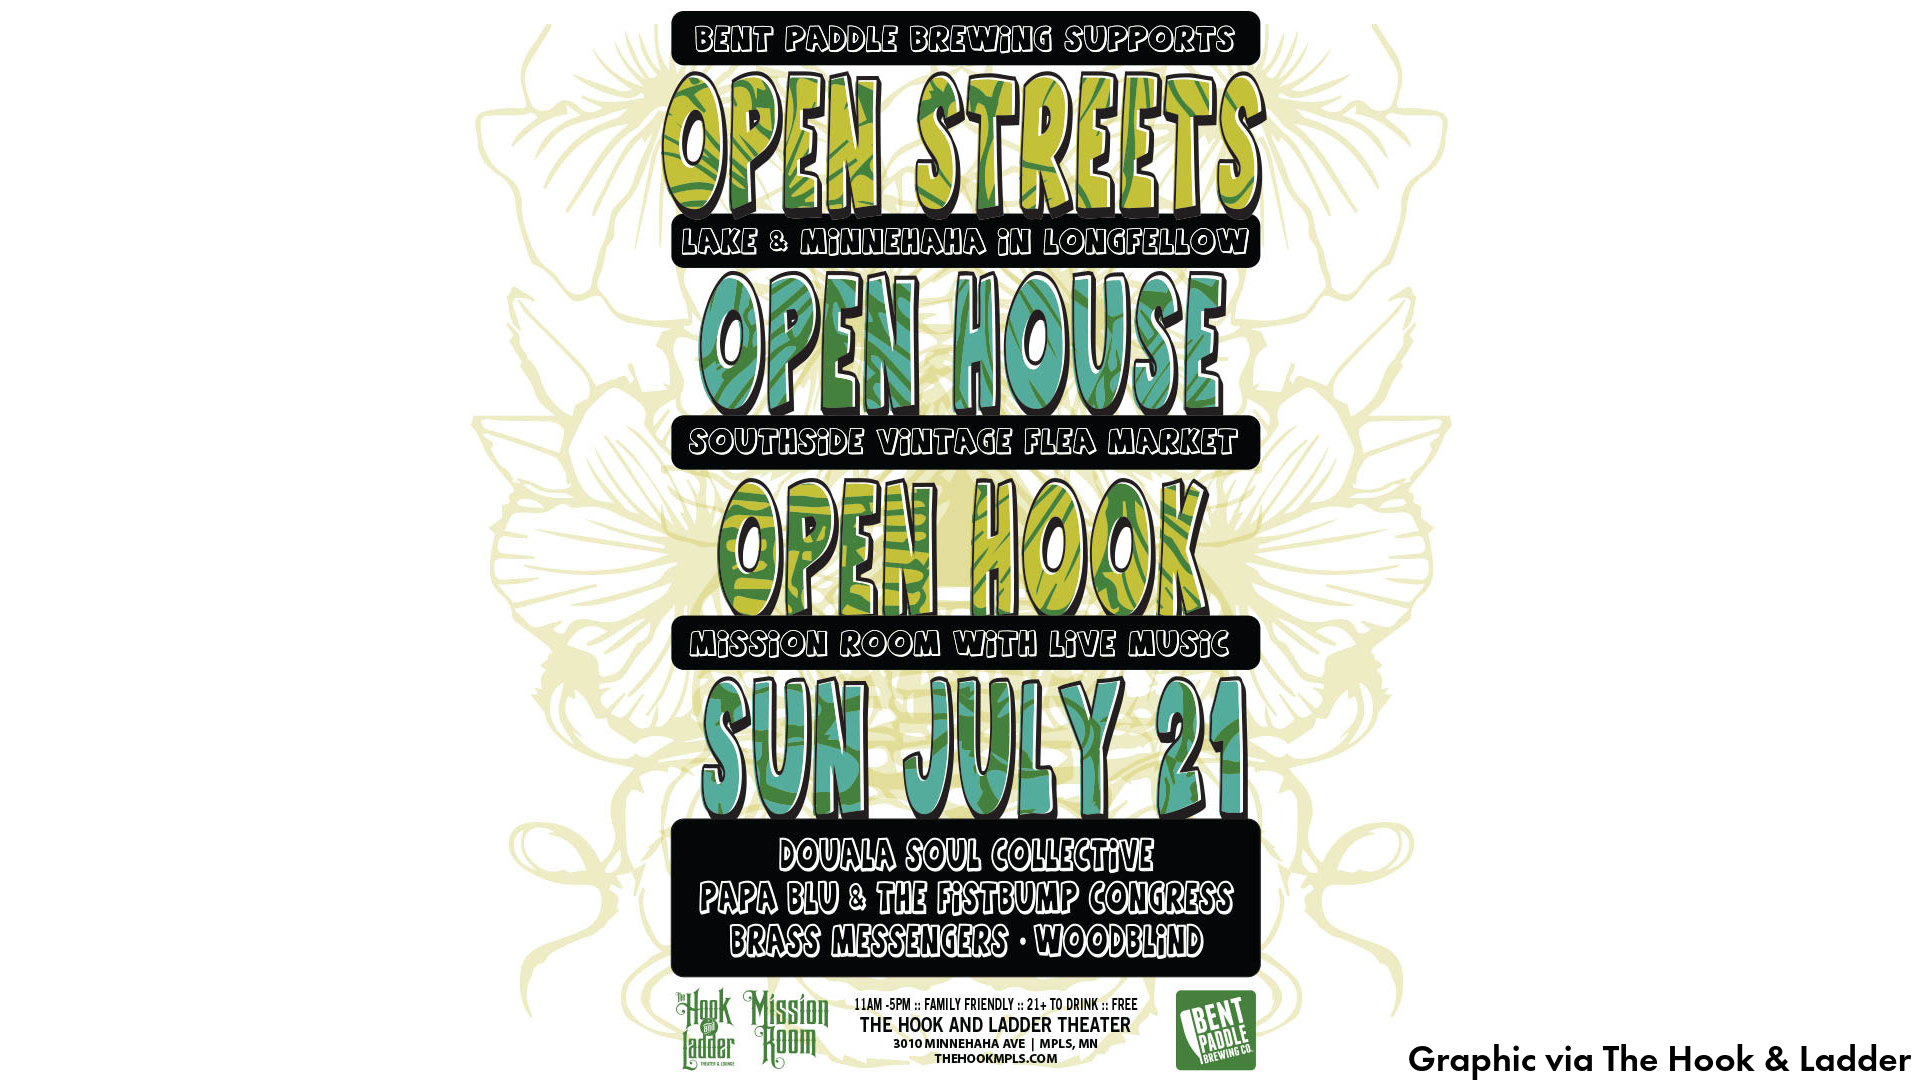 Graphic advertising Open Streets, Open House, Open Hook event